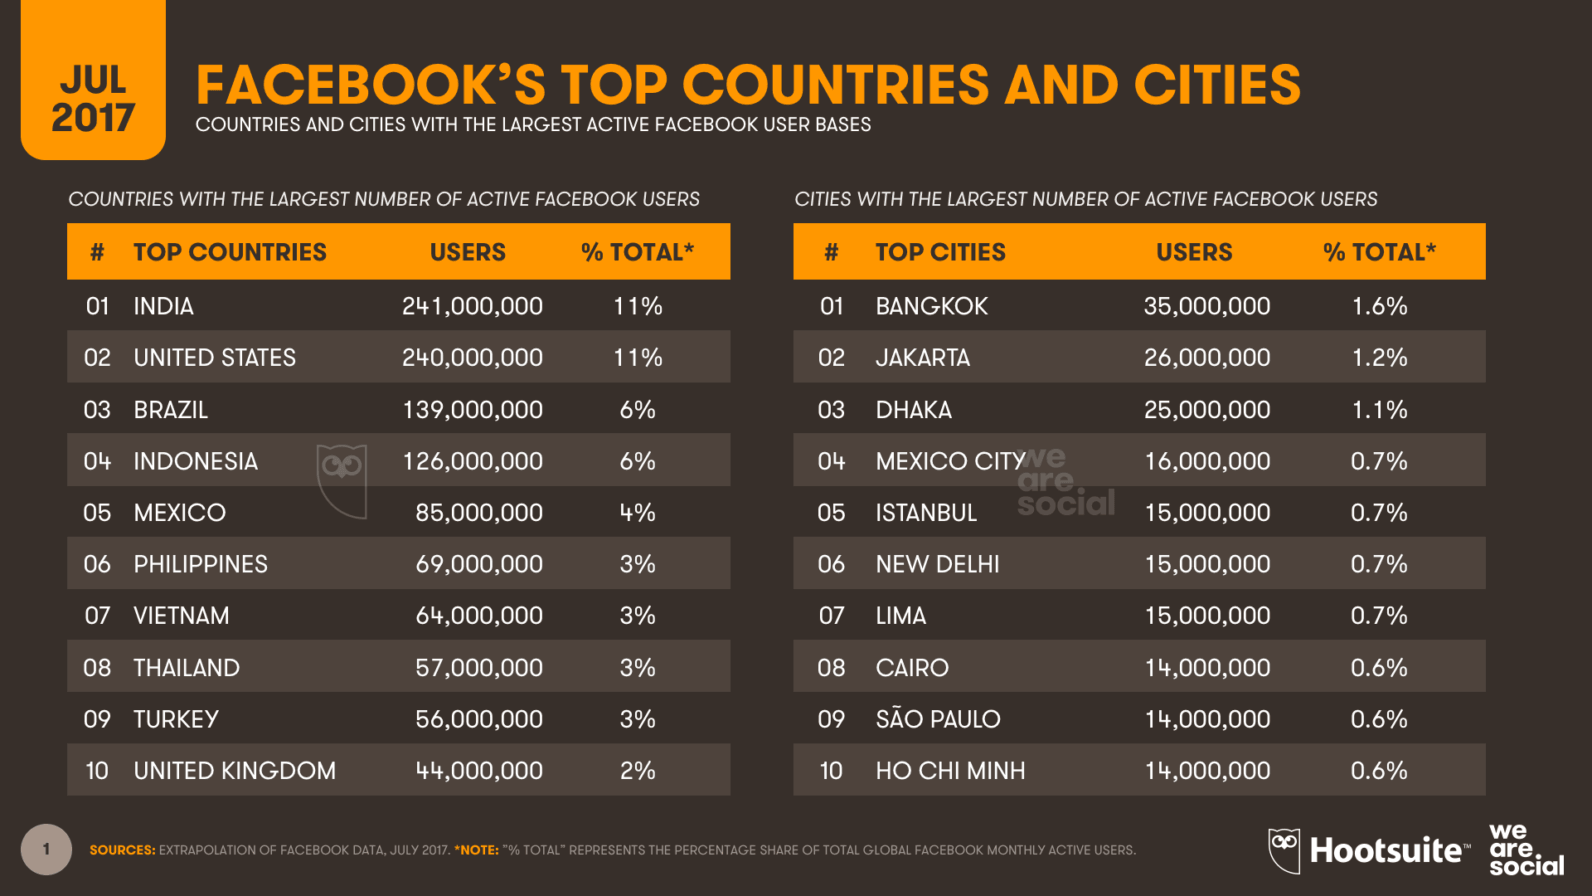 Facebook Now Has More Users In India Than In Any Other Country